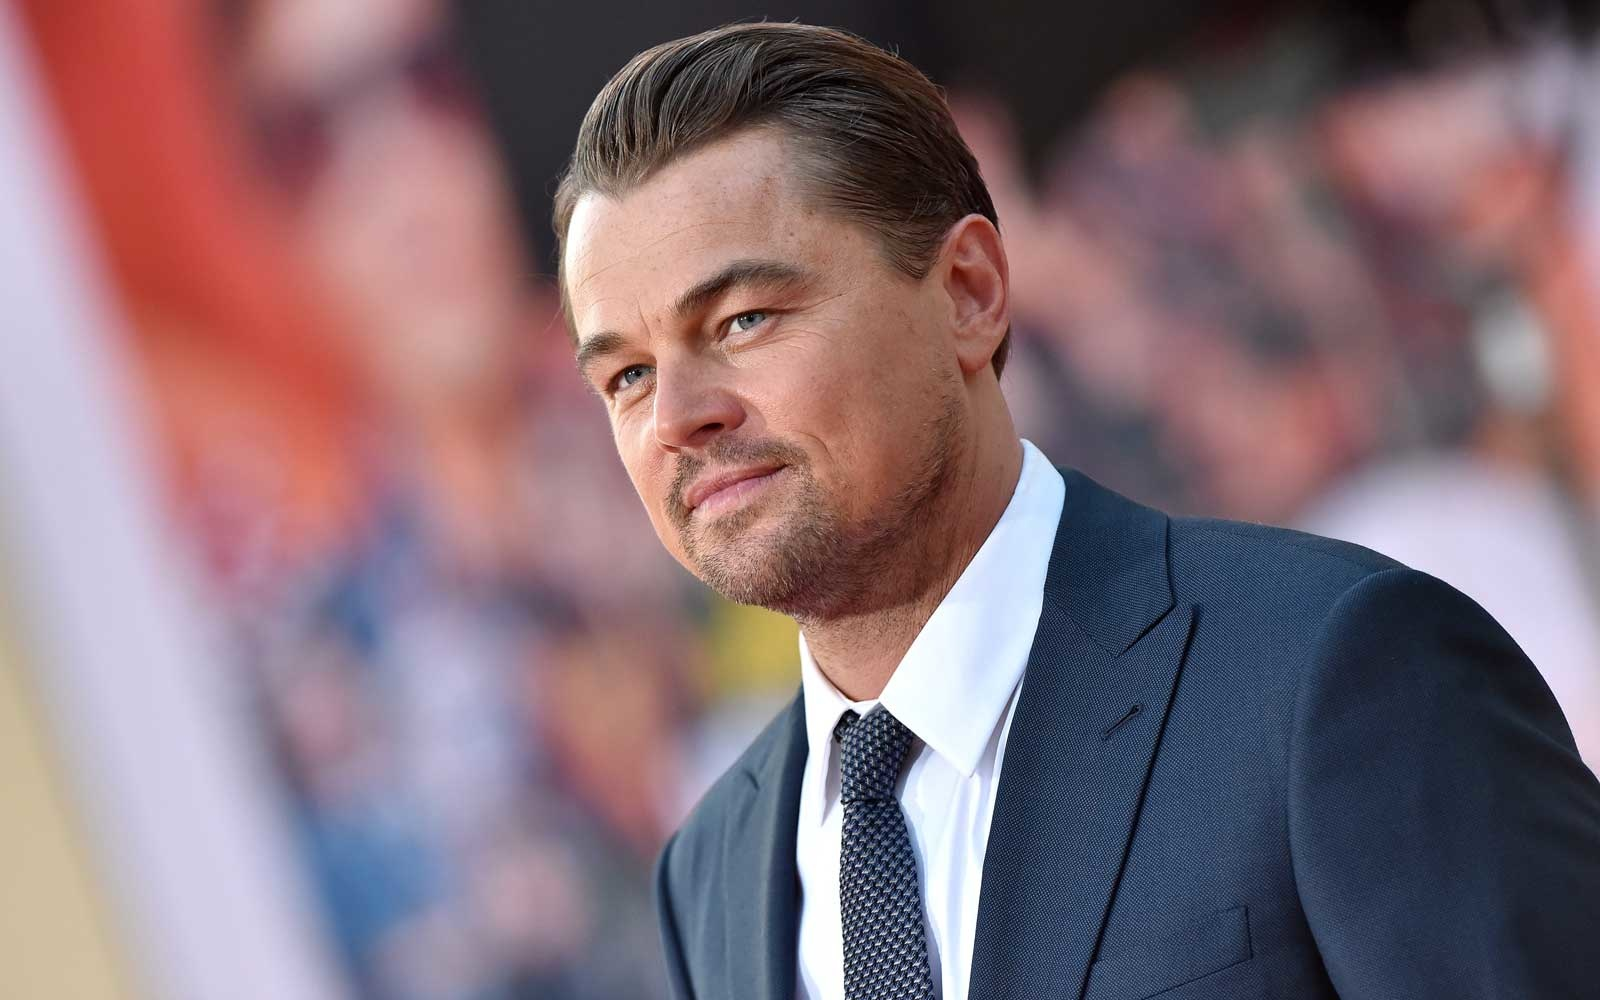 Leonardo Dicaprio launches $5 million 'Amazon Forest Fund' as Brazil fires keep burning